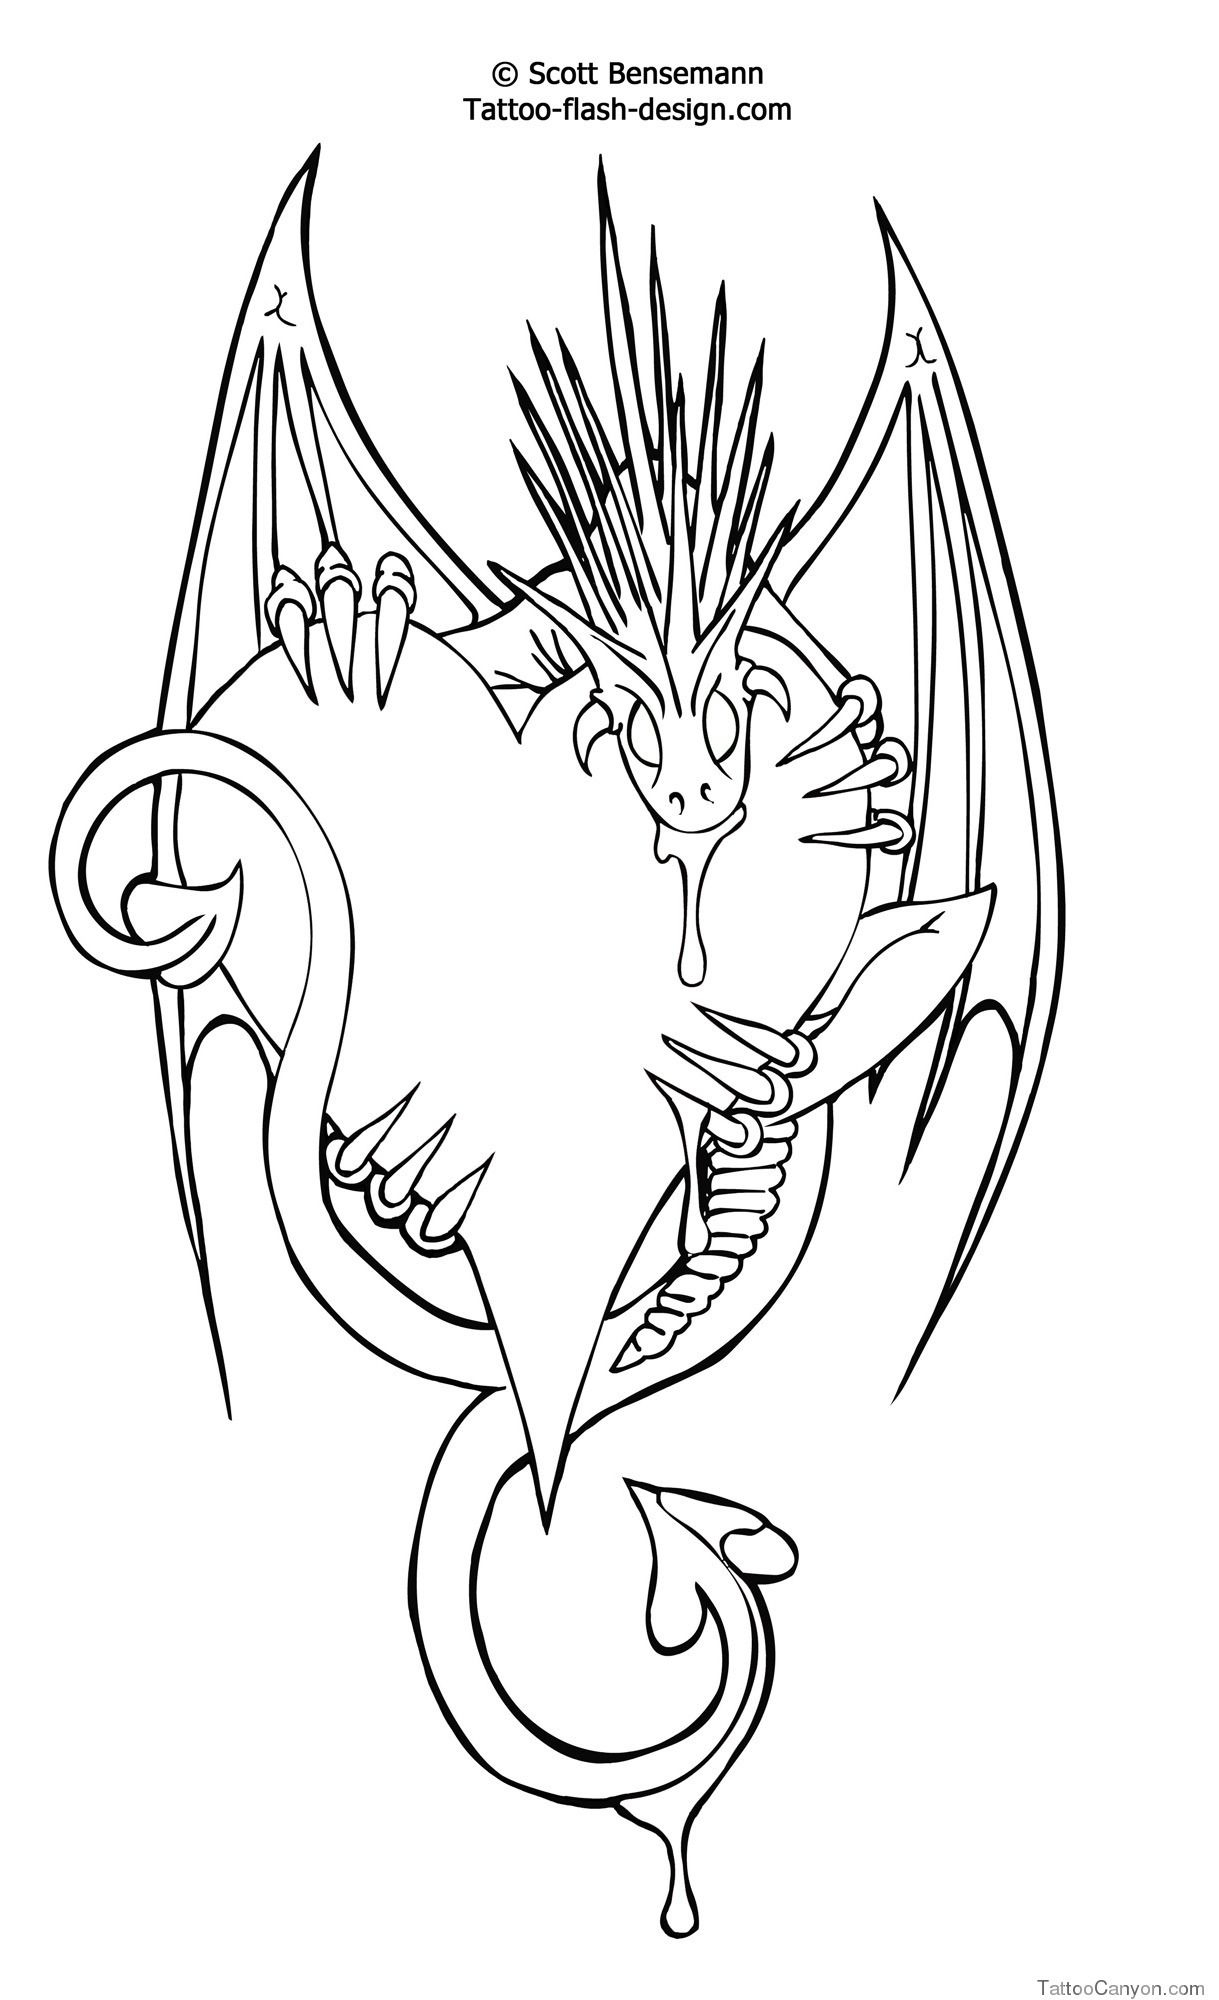 2935-Love-Heart-Dragon-Design-Free-Flash-Printable-Tattoo--Tattoo - Free Printable Flash Tattoo